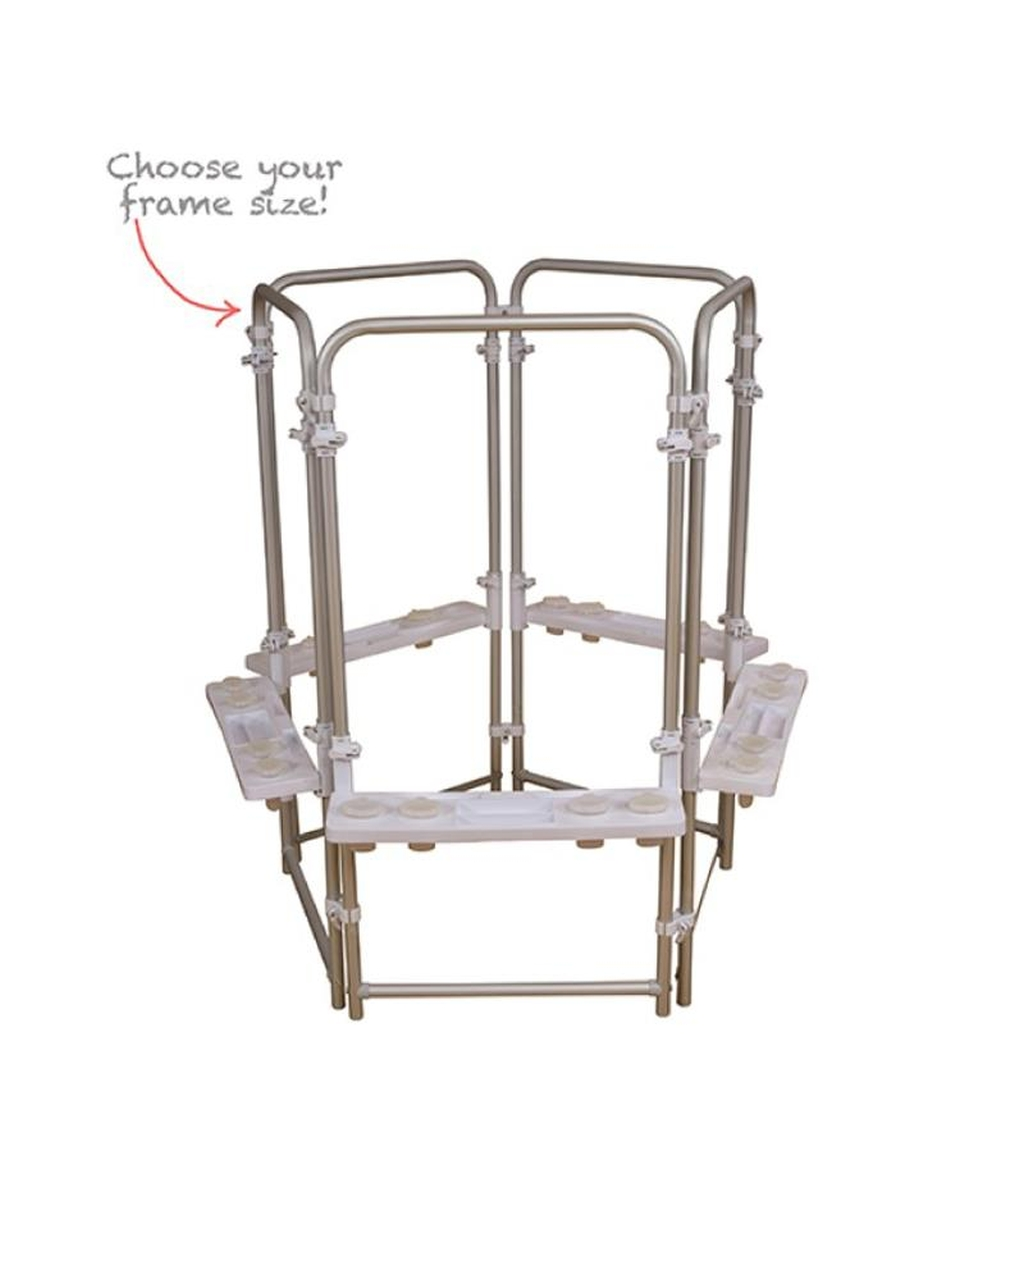 Aluminium Easel - Triple Leg Set - 5 Sided